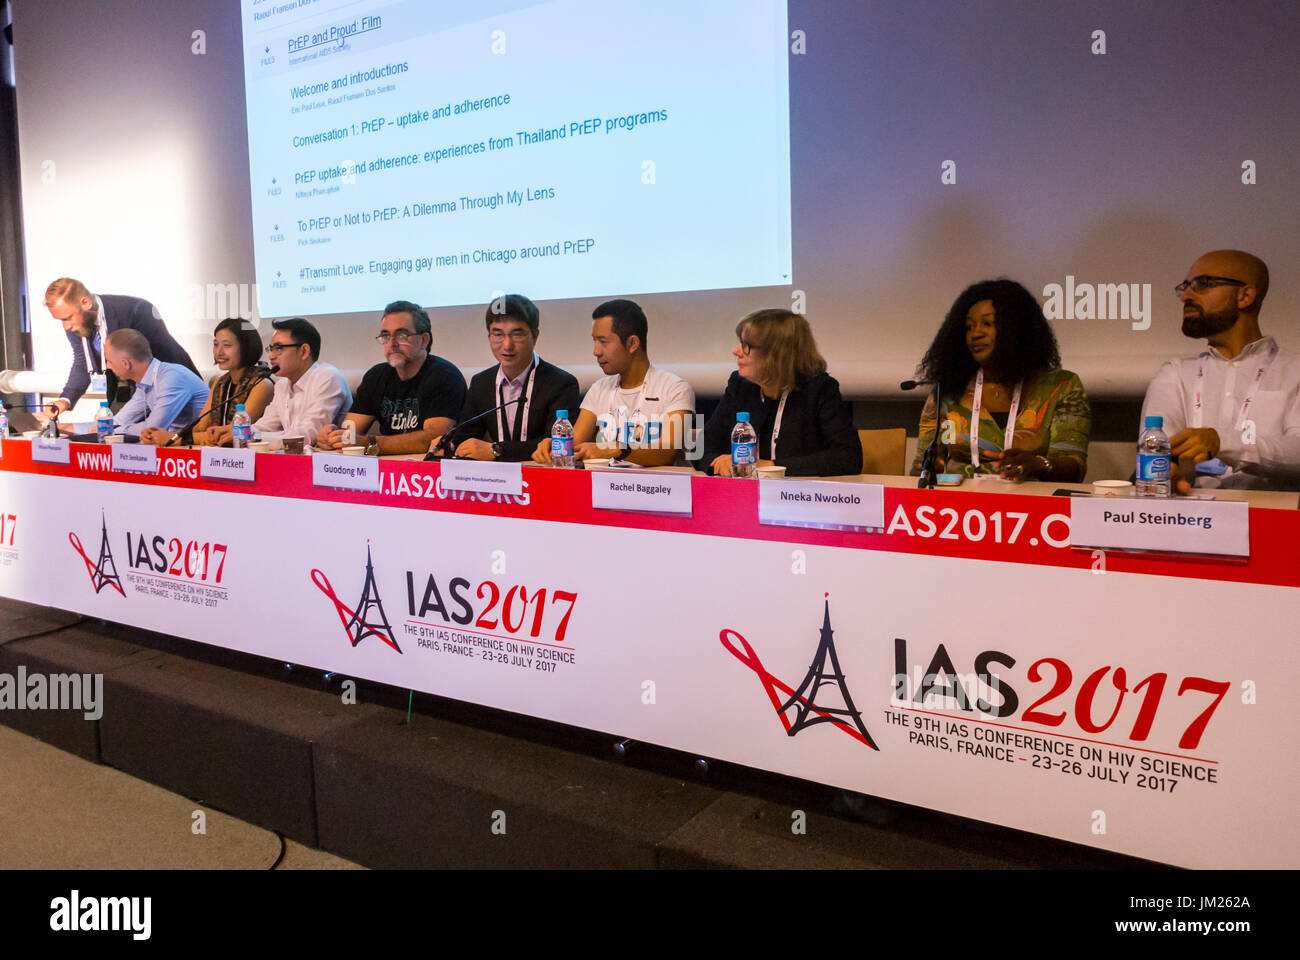 Paris, France. I.A.S. International AIDS Society Congress, Midnight Poonkasetwattana, Asia Pacific Coalition on - Stock Image